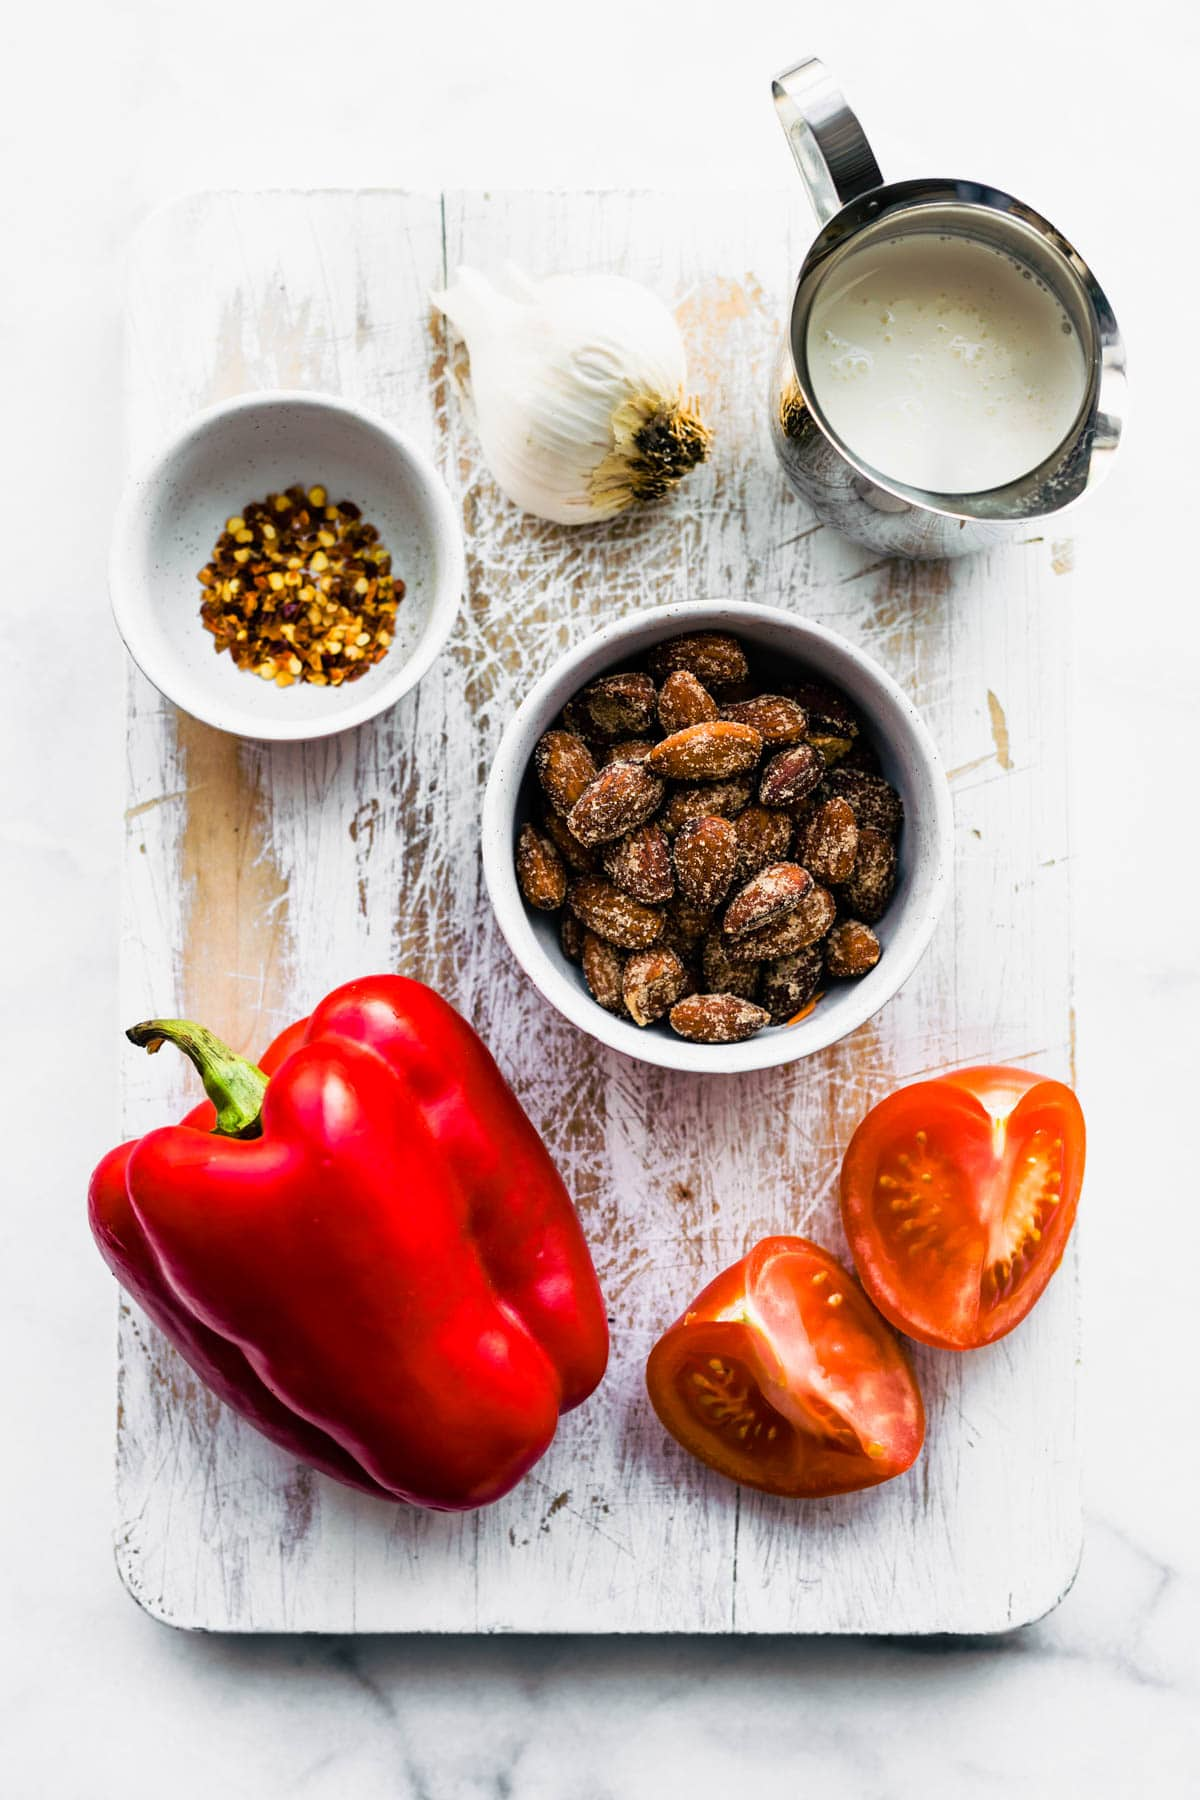 ingredients to make roasted red pepper sauce on white wooden cutting board